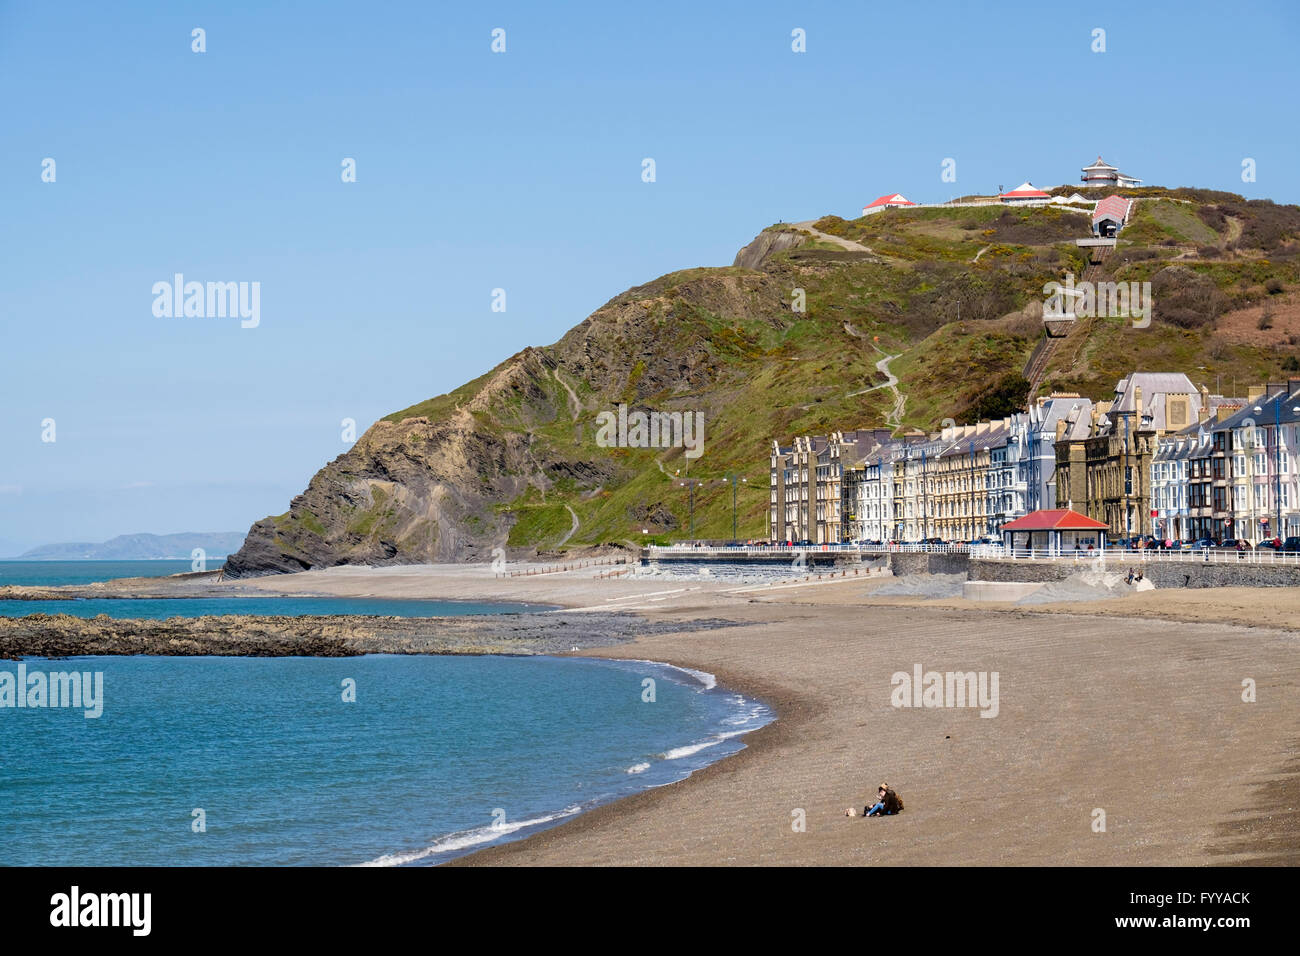 North beach and seafront buildings on Marine Terrace in Cardigan Bay below cliff railway on Constitution Hill. Aberystwyth - Stock Image